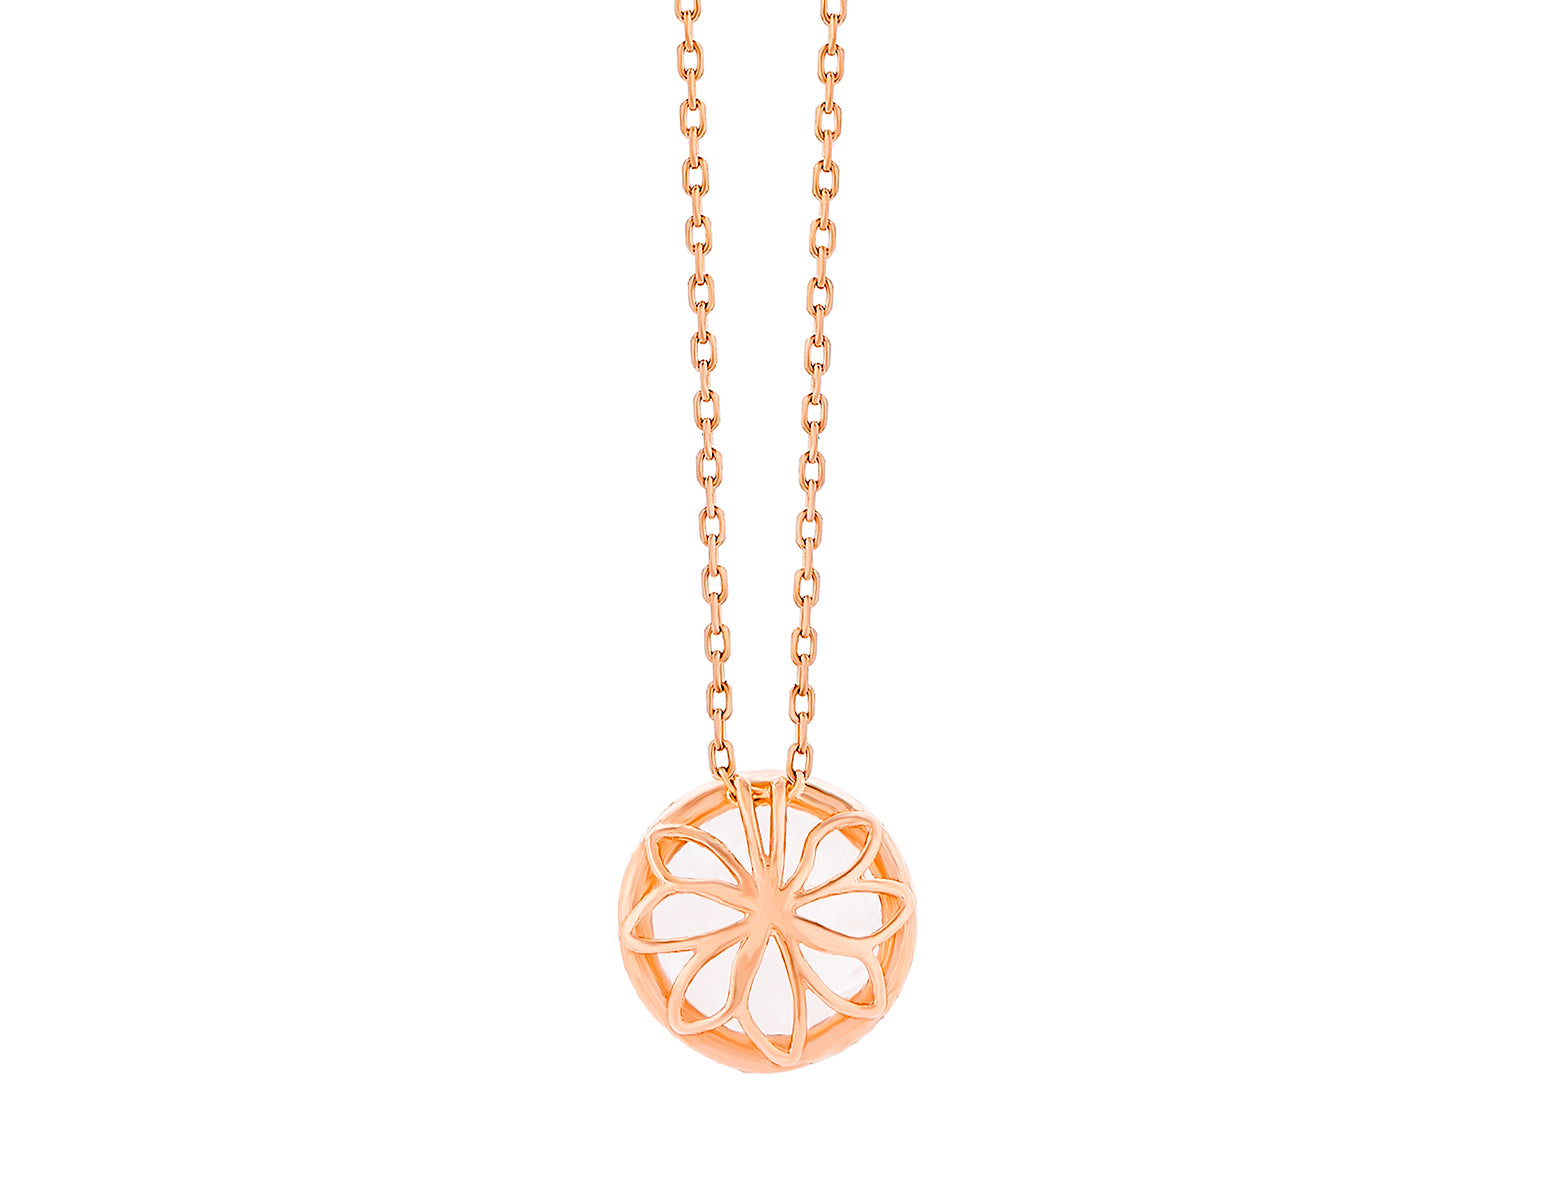 14K ROSE GOLD AMALFI RISING PENDANT